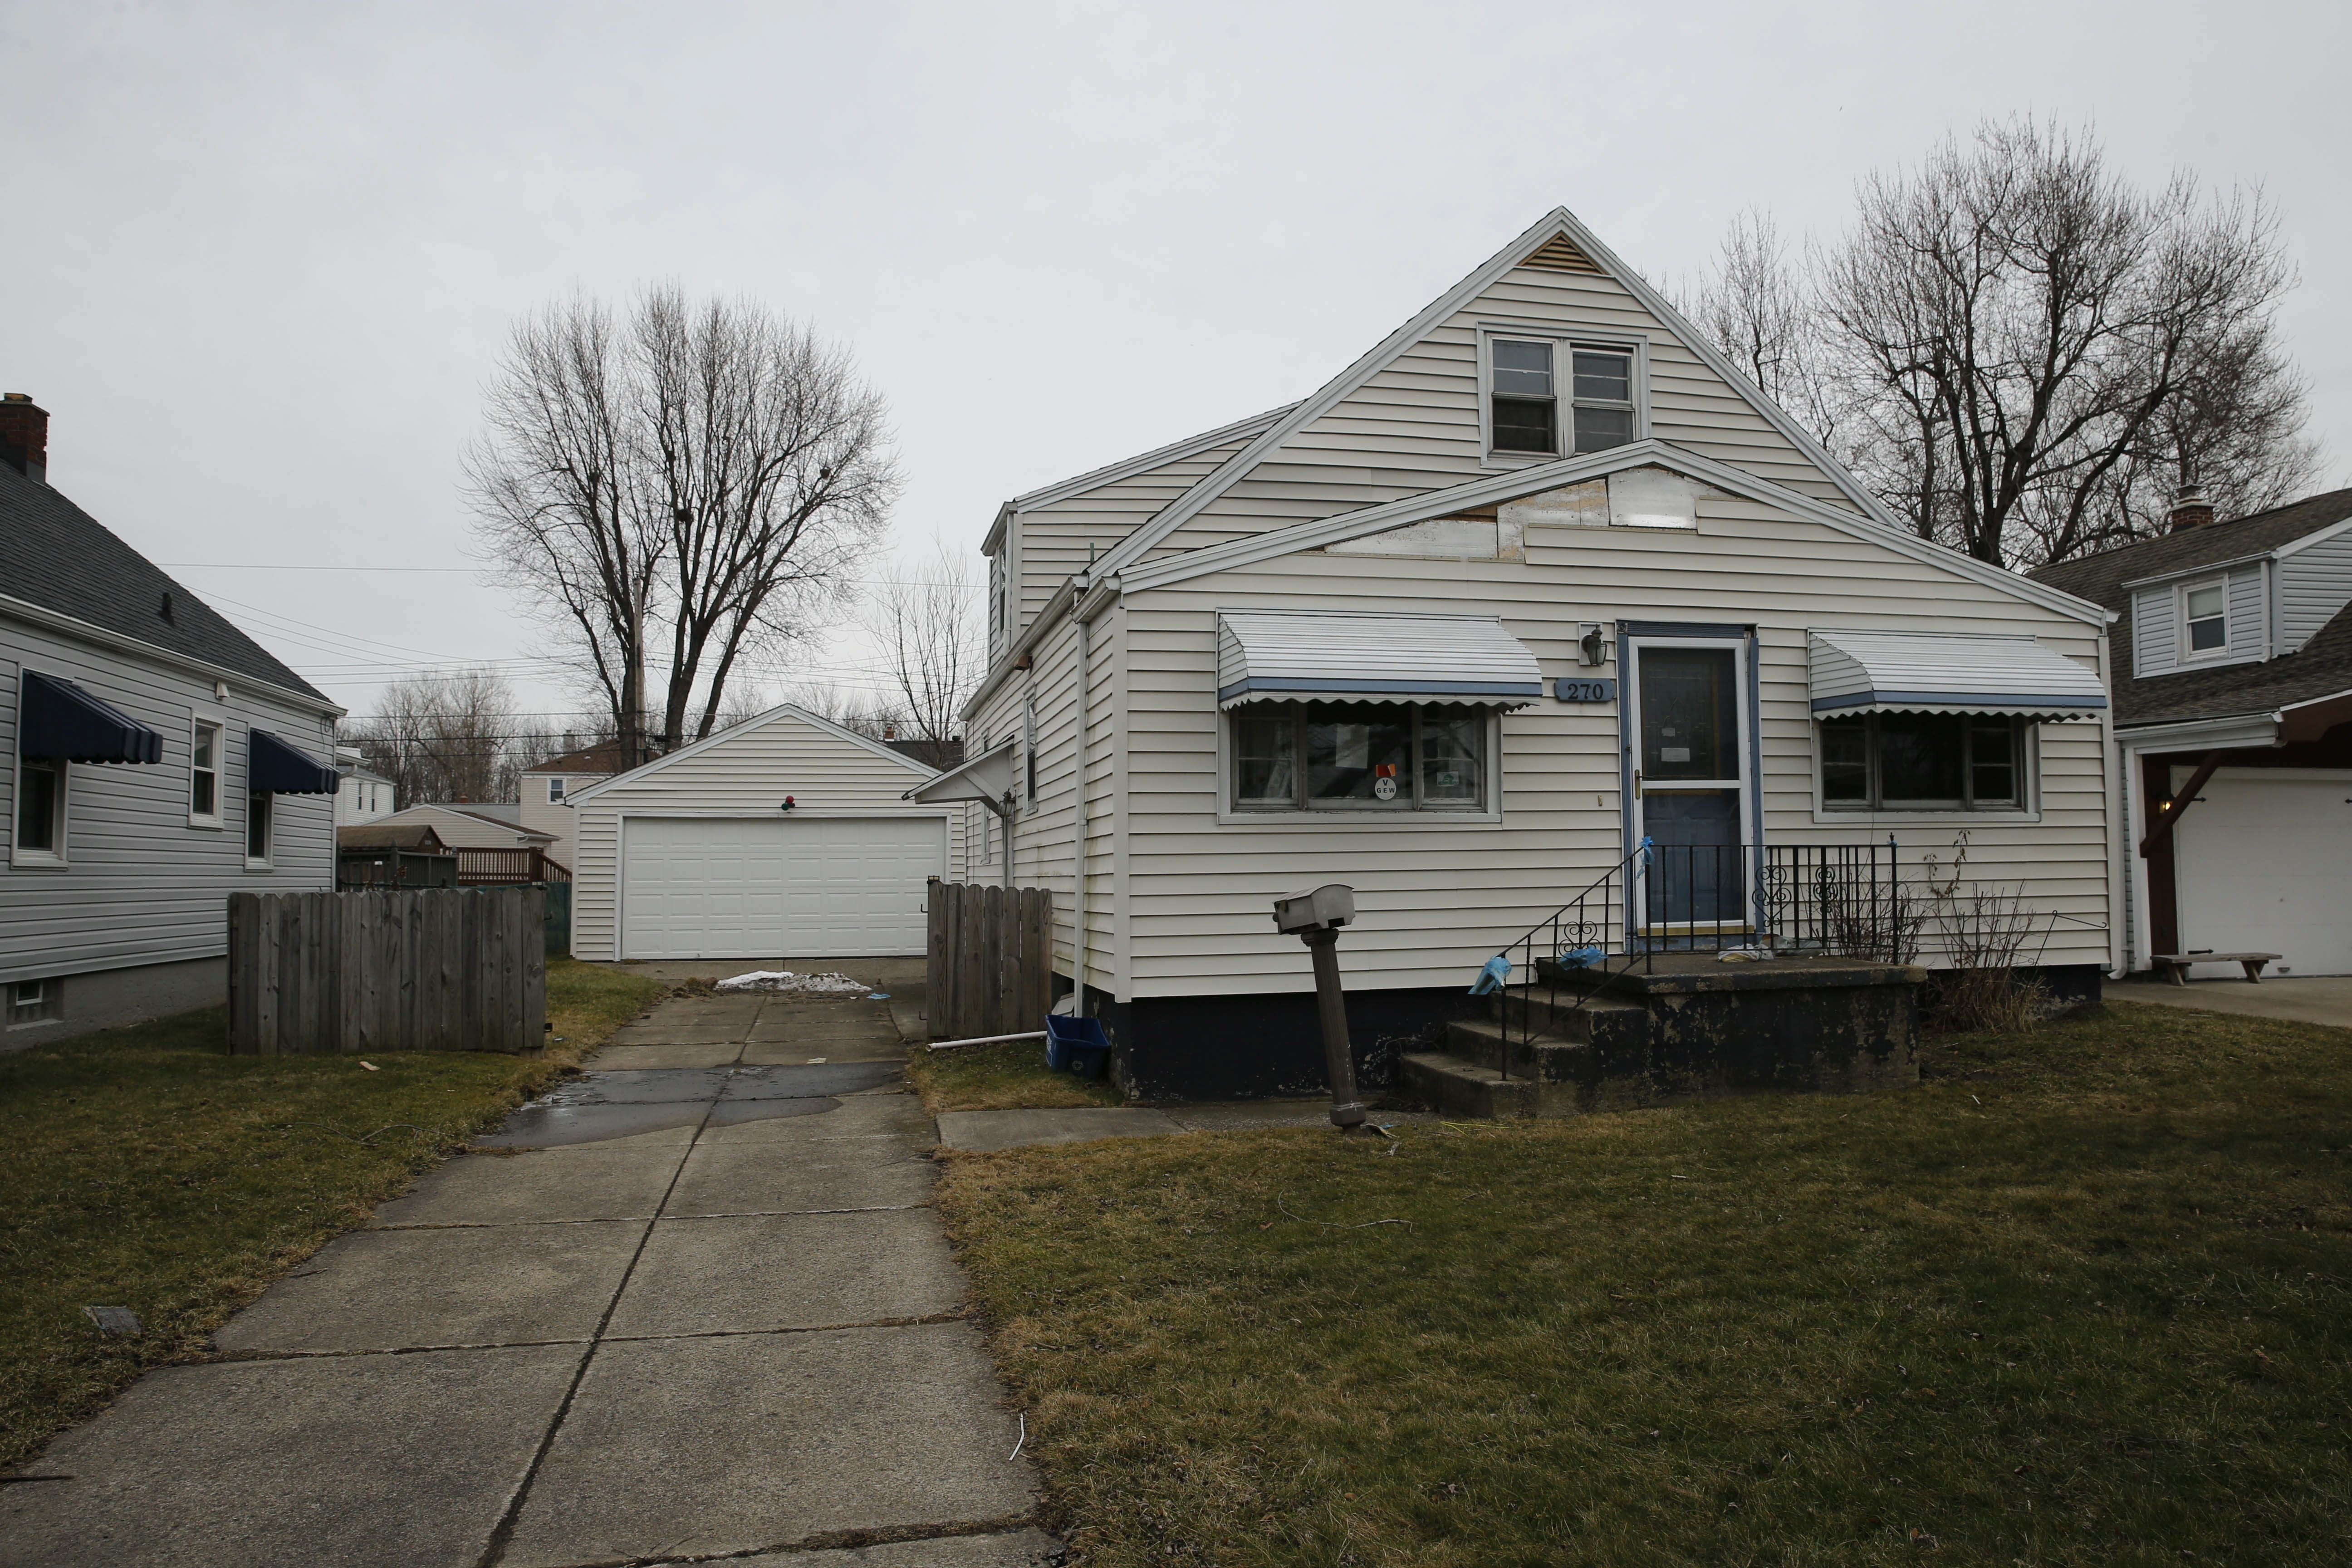 Abandoned homes awaiting completion of the foreclosure process, like this house in West Seneca earlier this year, are often left to deteriorate and can eventually drag down entire neighborhoods.